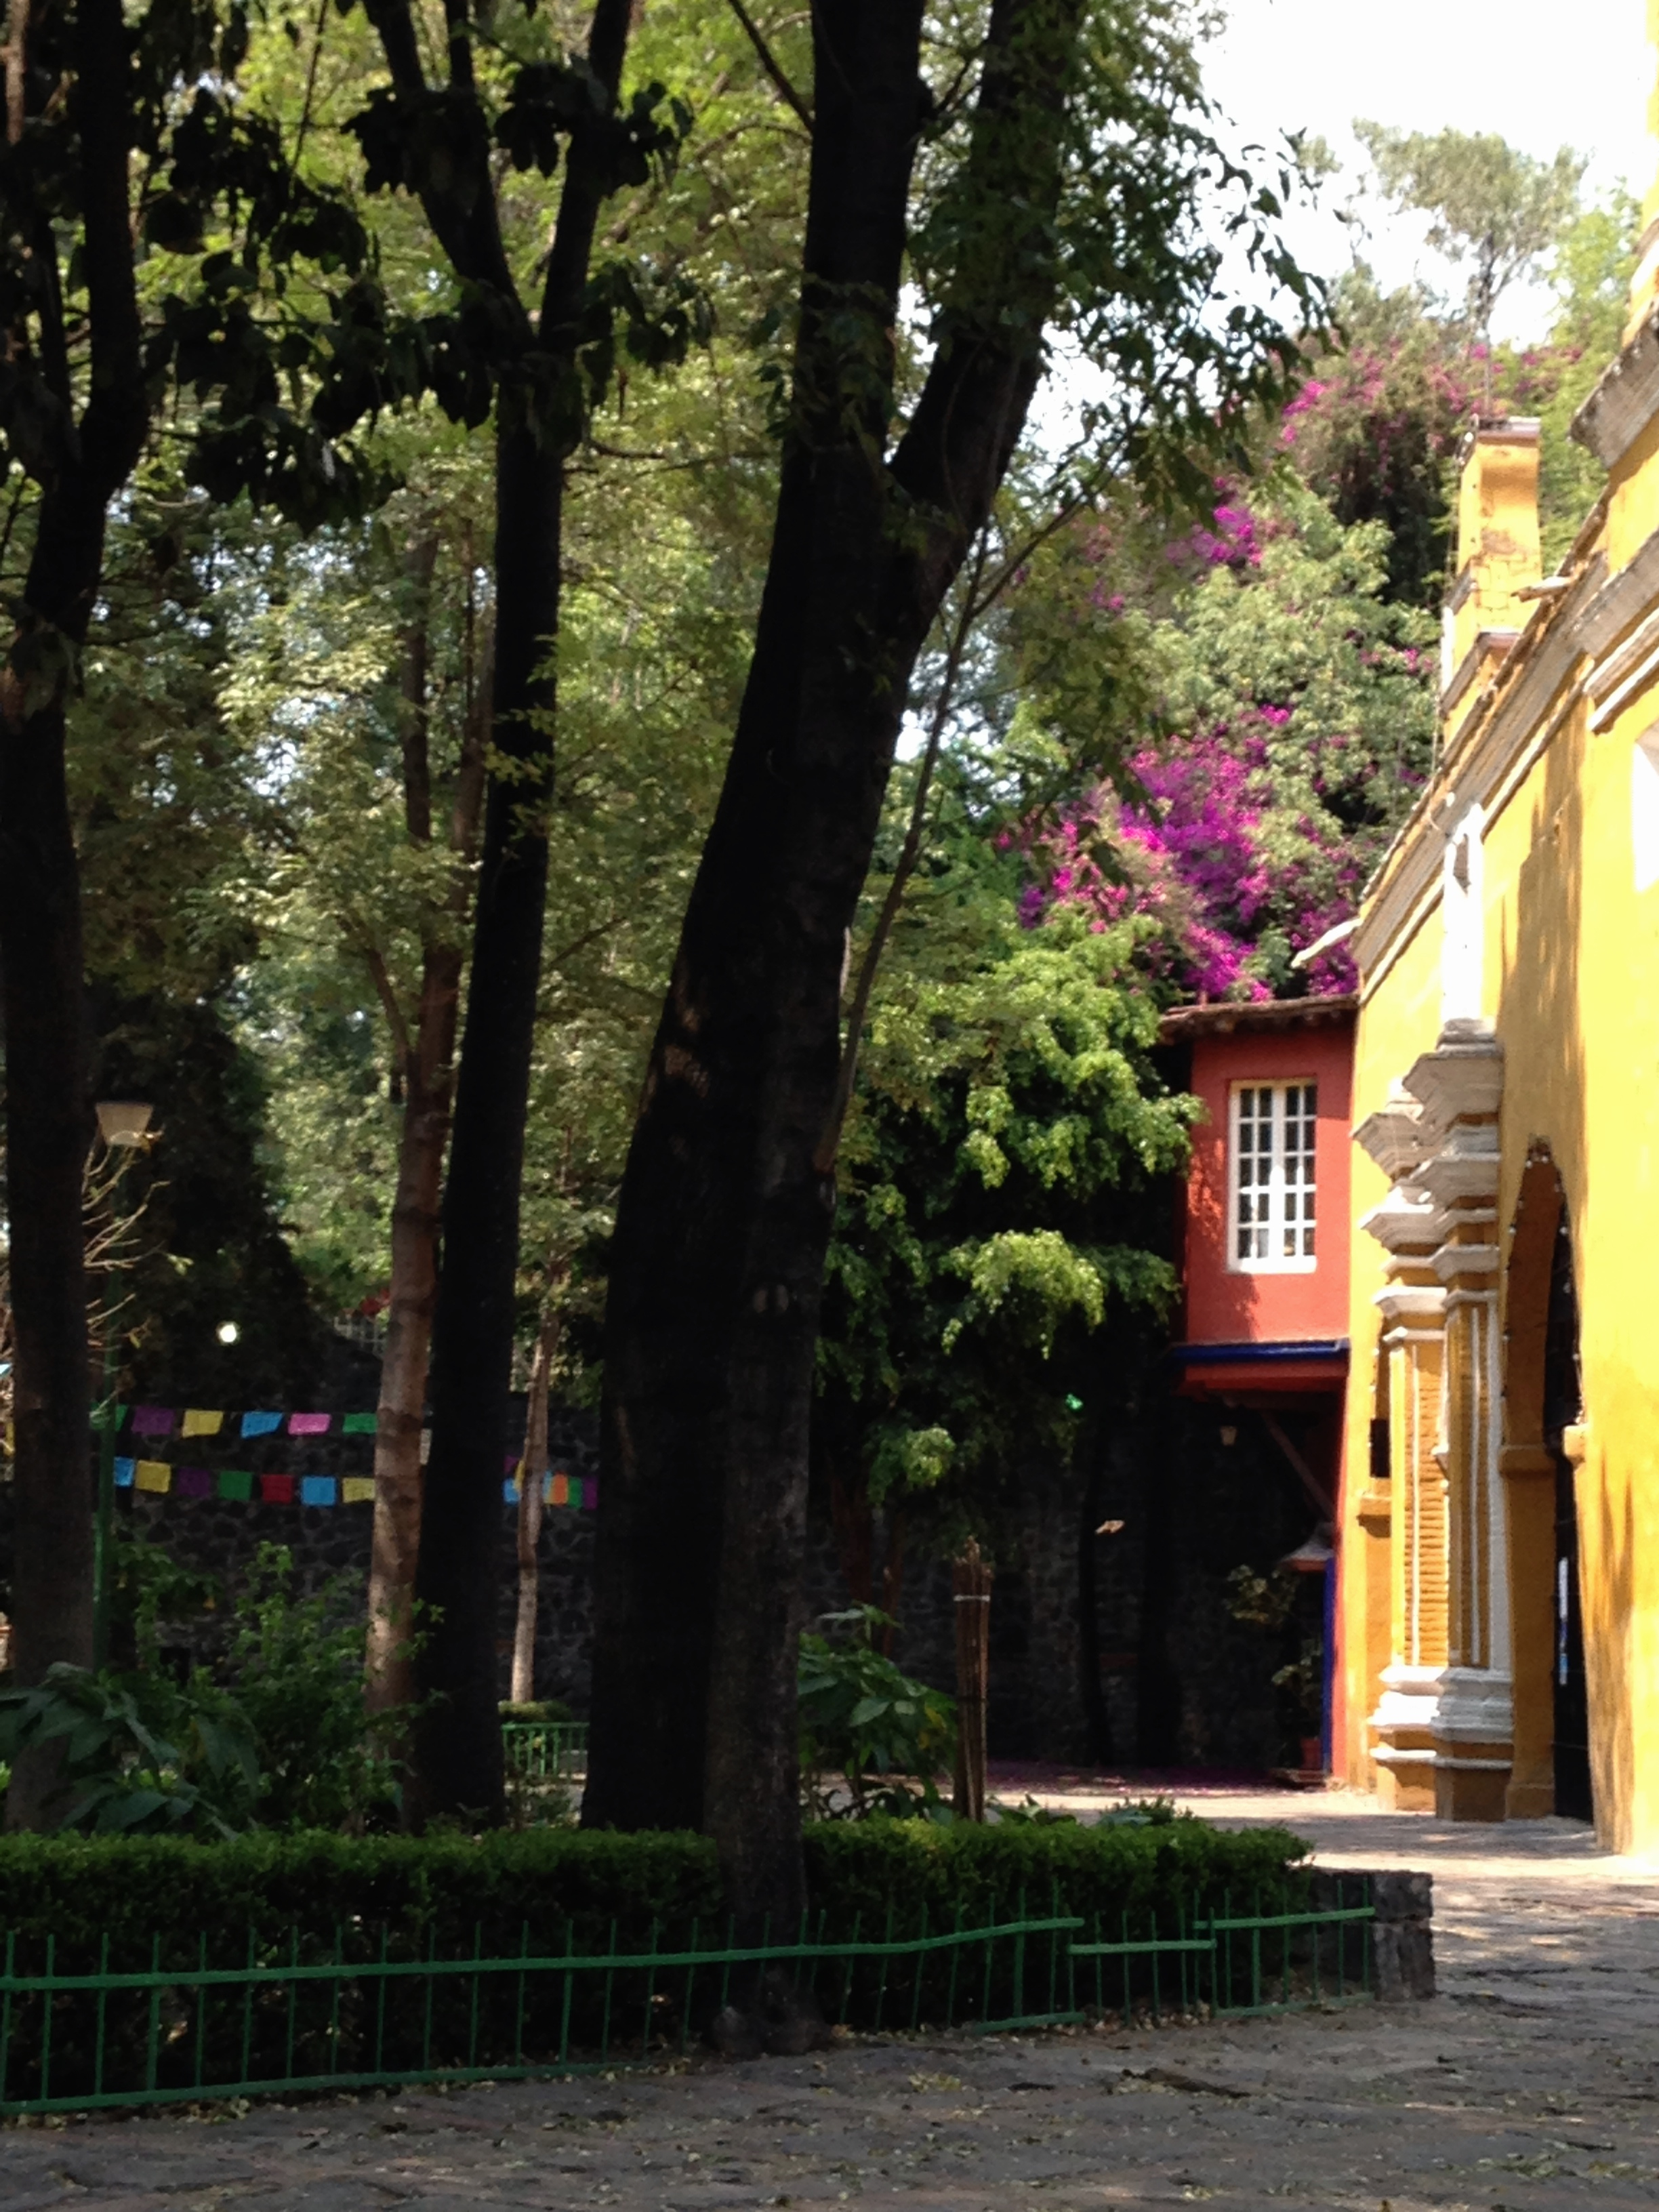 Canals Mexico City, Plaza de la Santa Catarina, Coyoacan, Mexico City | pictures ...